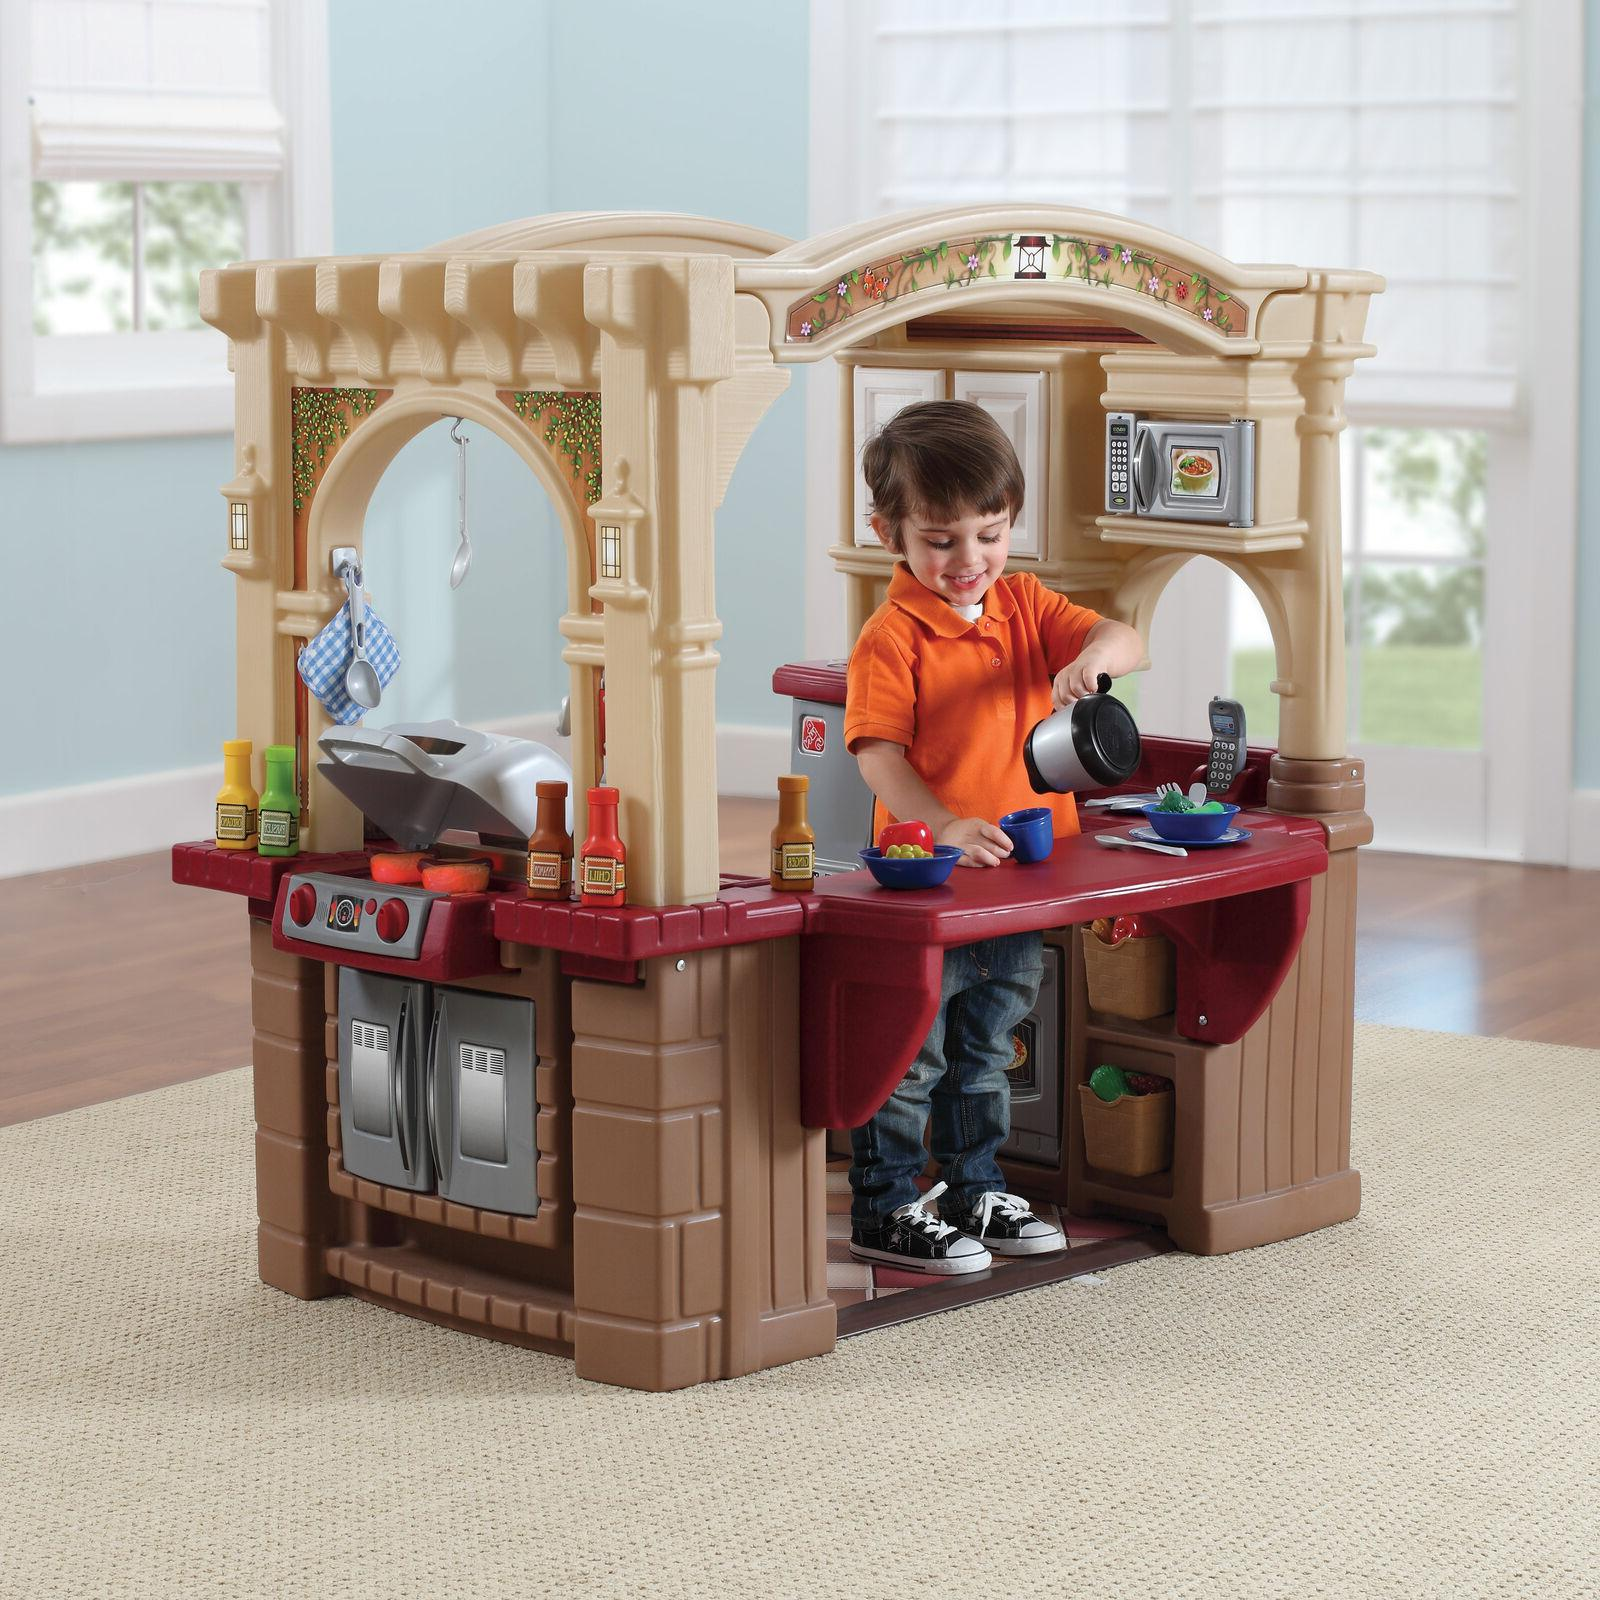 Toy Set Toddler Small Playhouse